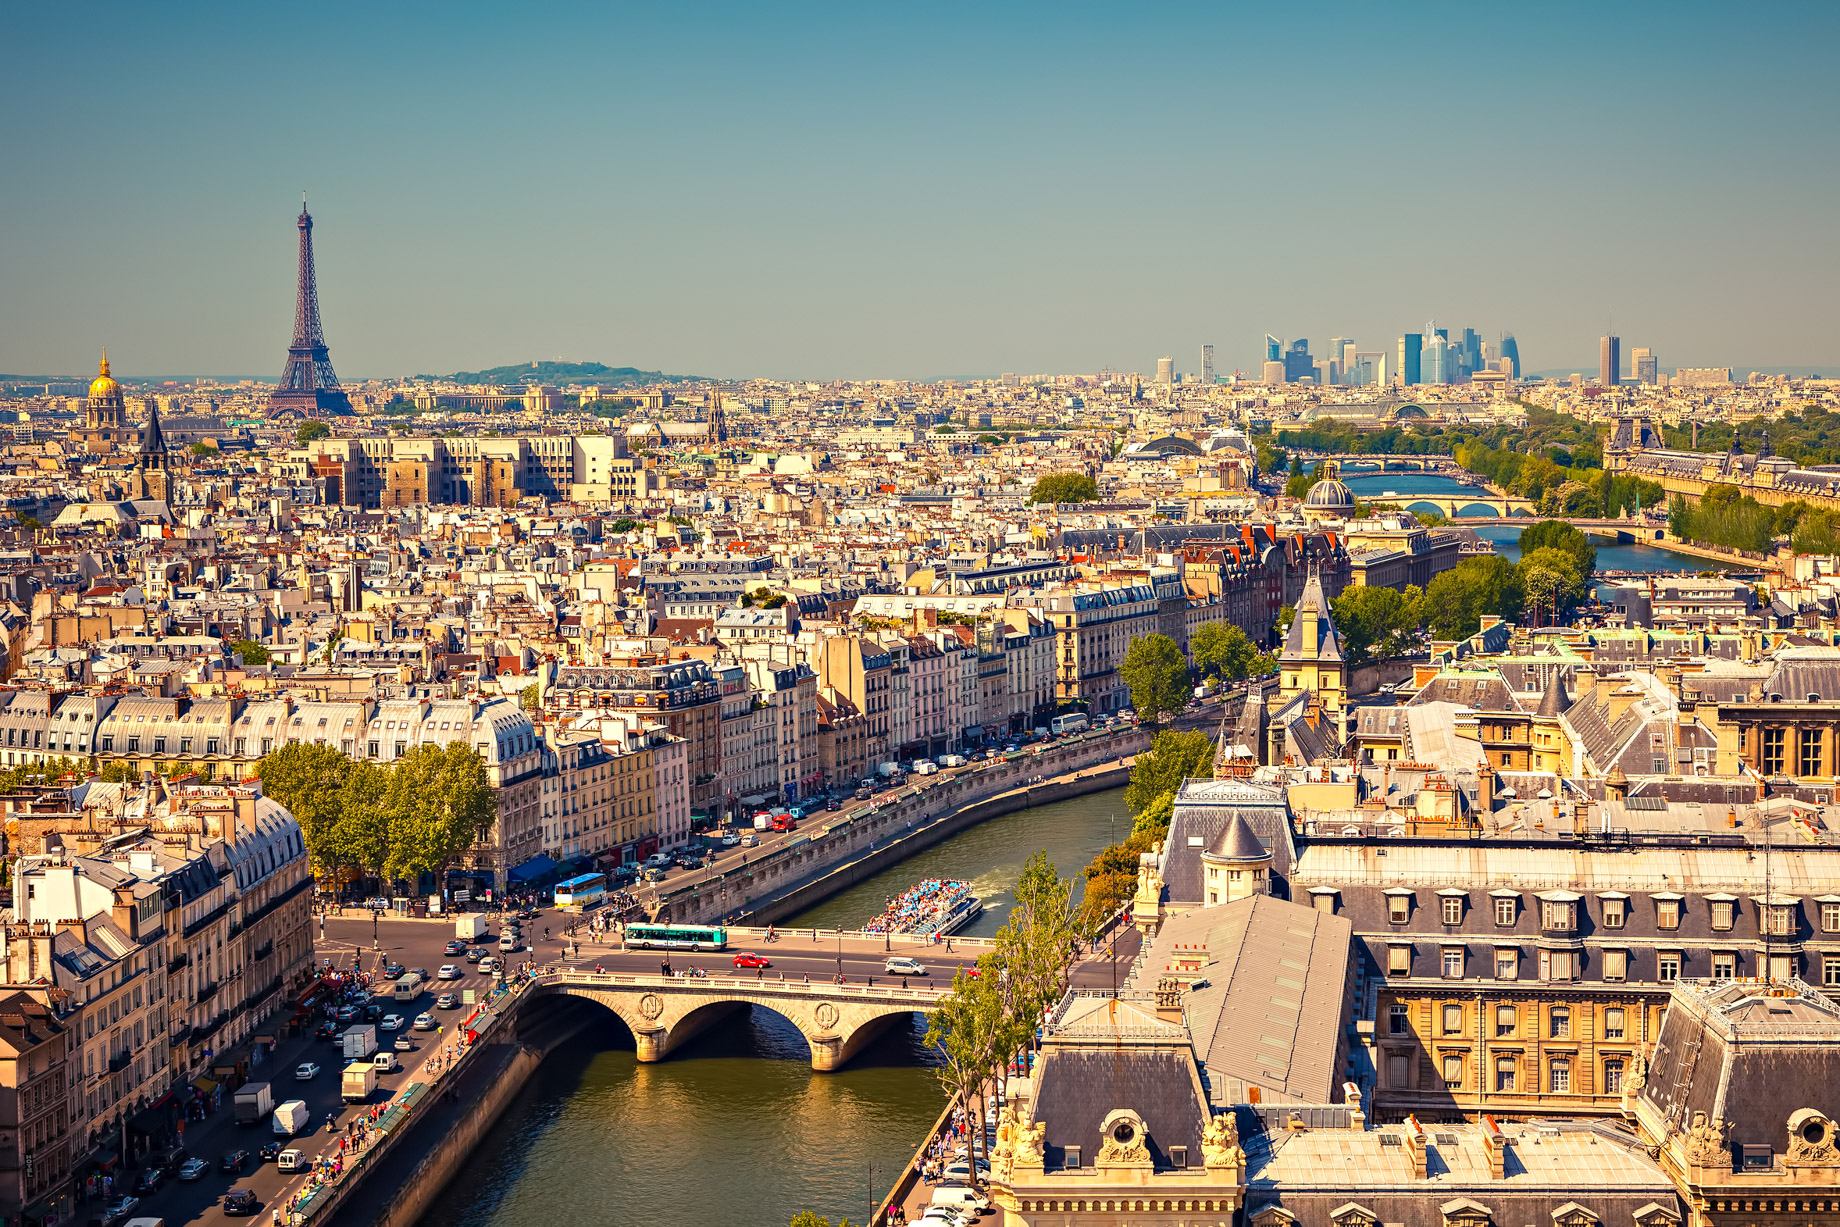 Paris, France - Top 5 European Countries for UK Pensioners Retiring Abroad